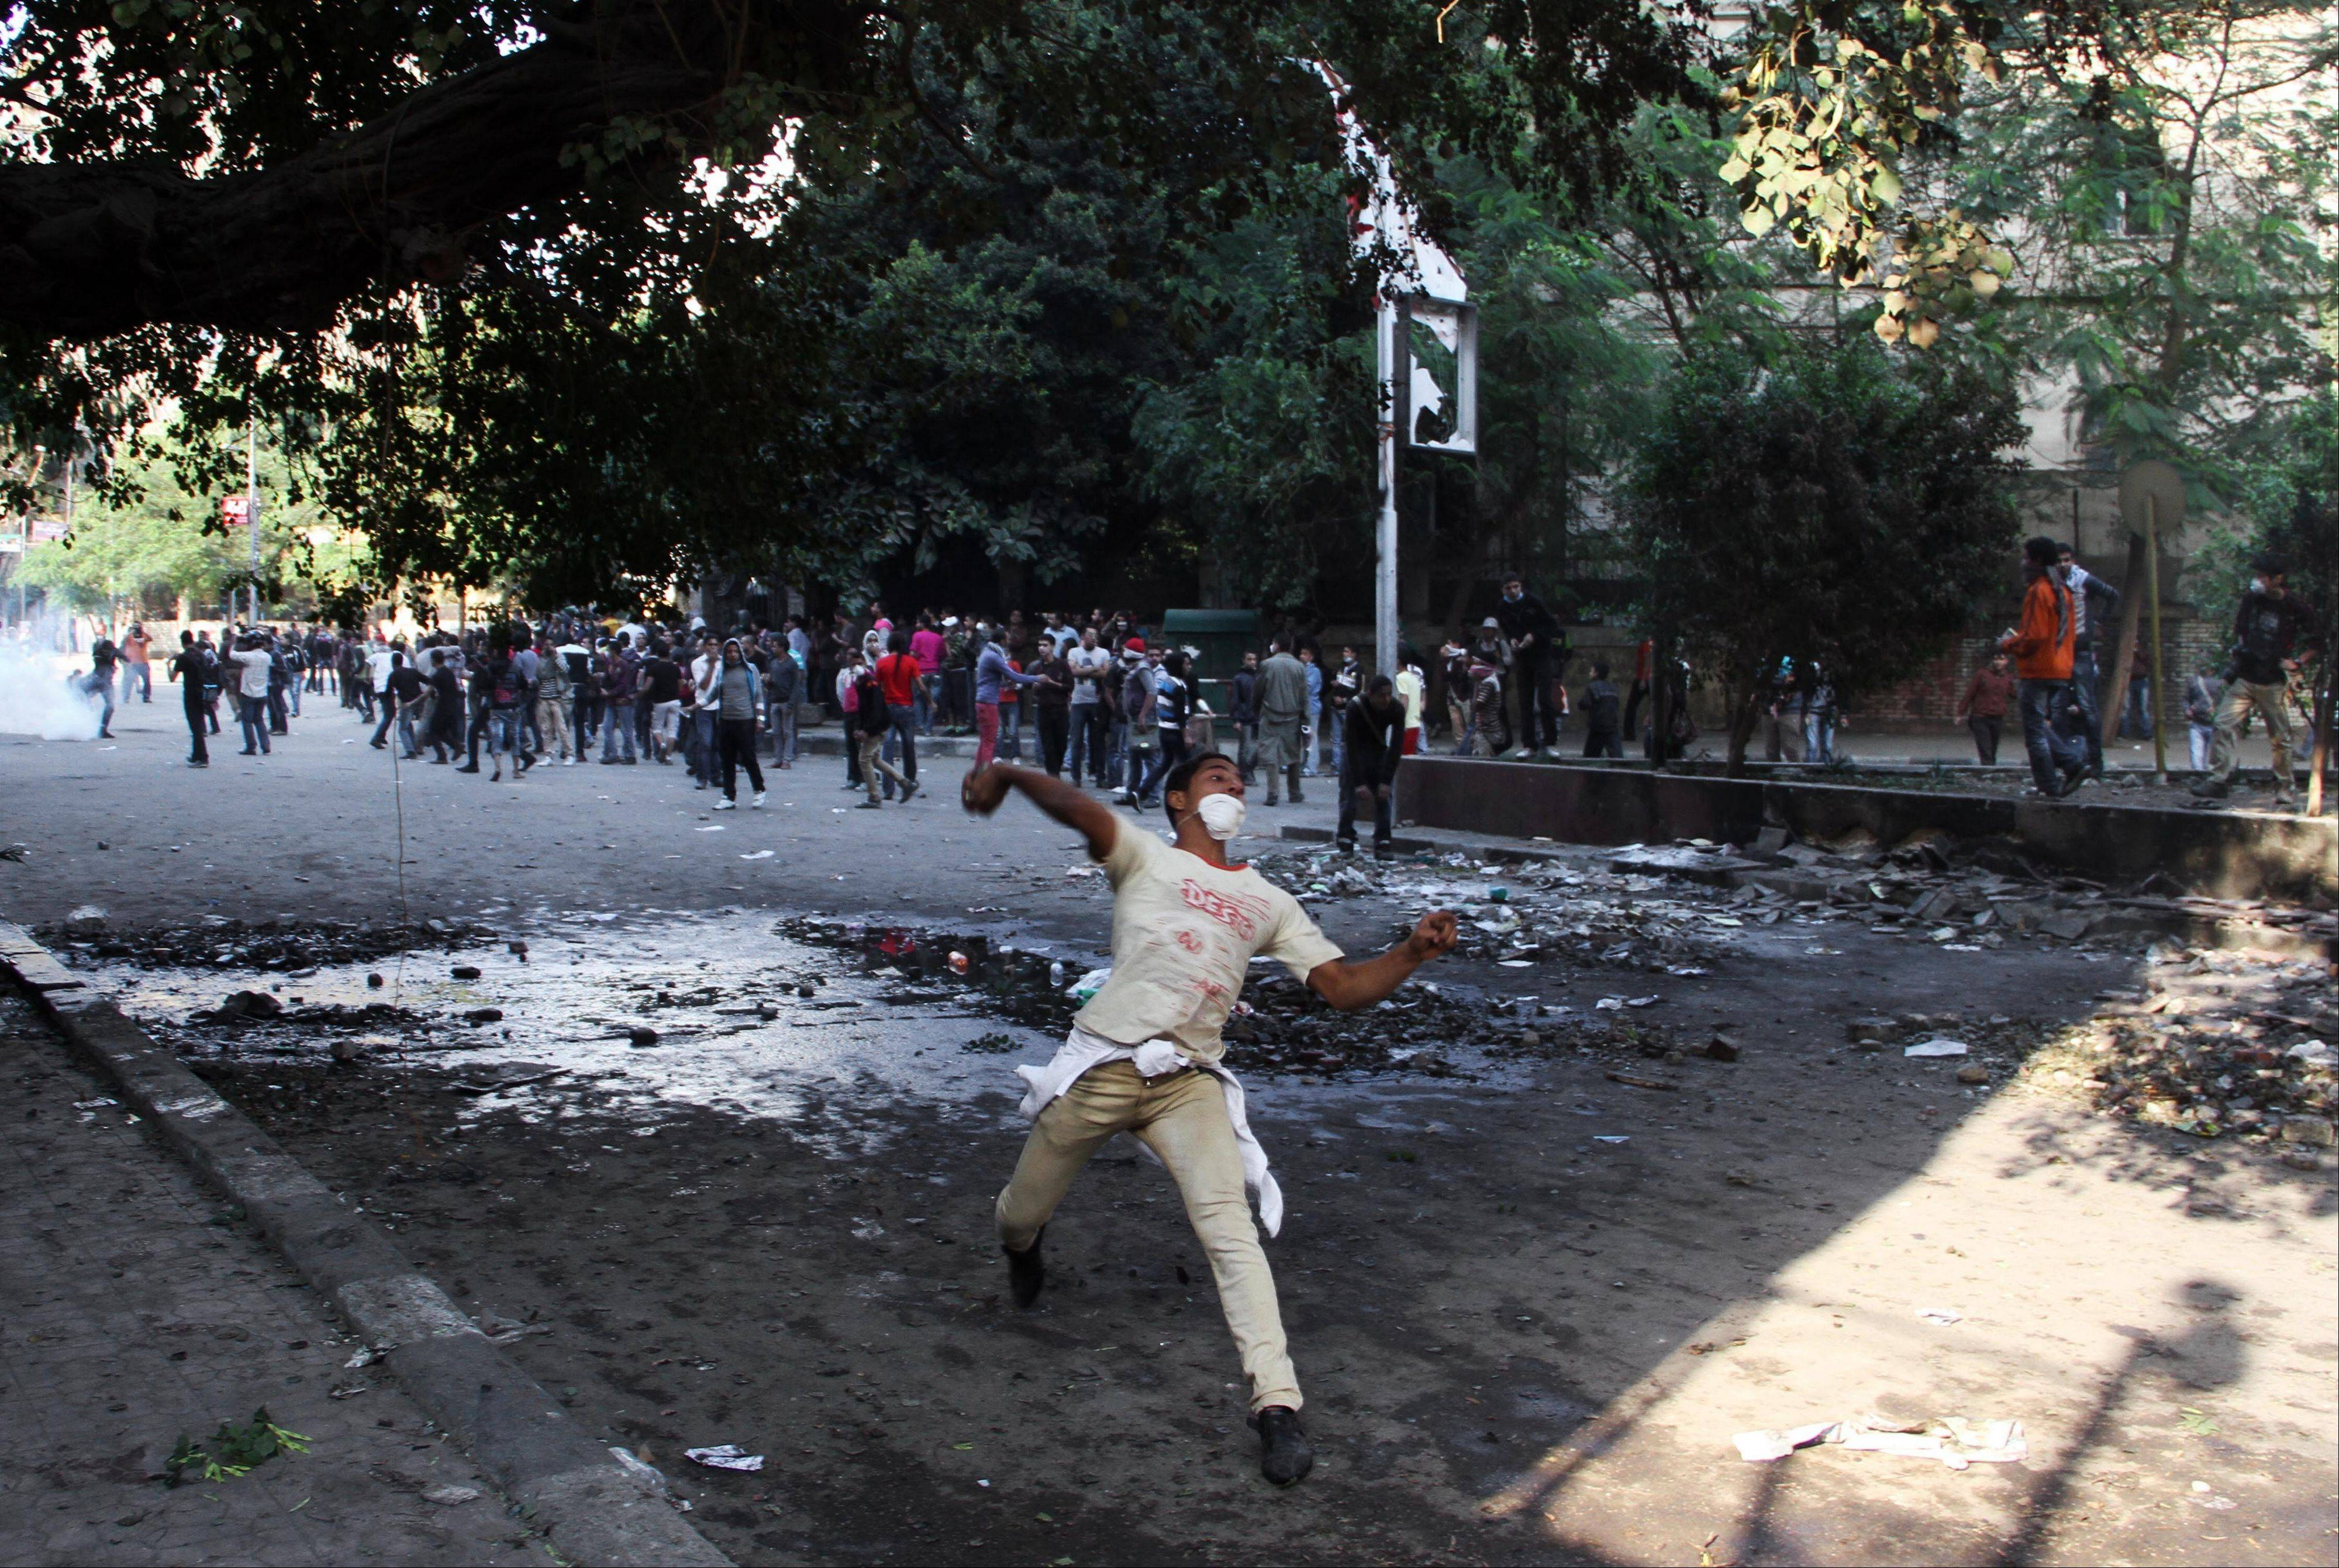 Egyptian protesters clash with security forces near Tahrir Square in Cairo, Egypt, Sunday.